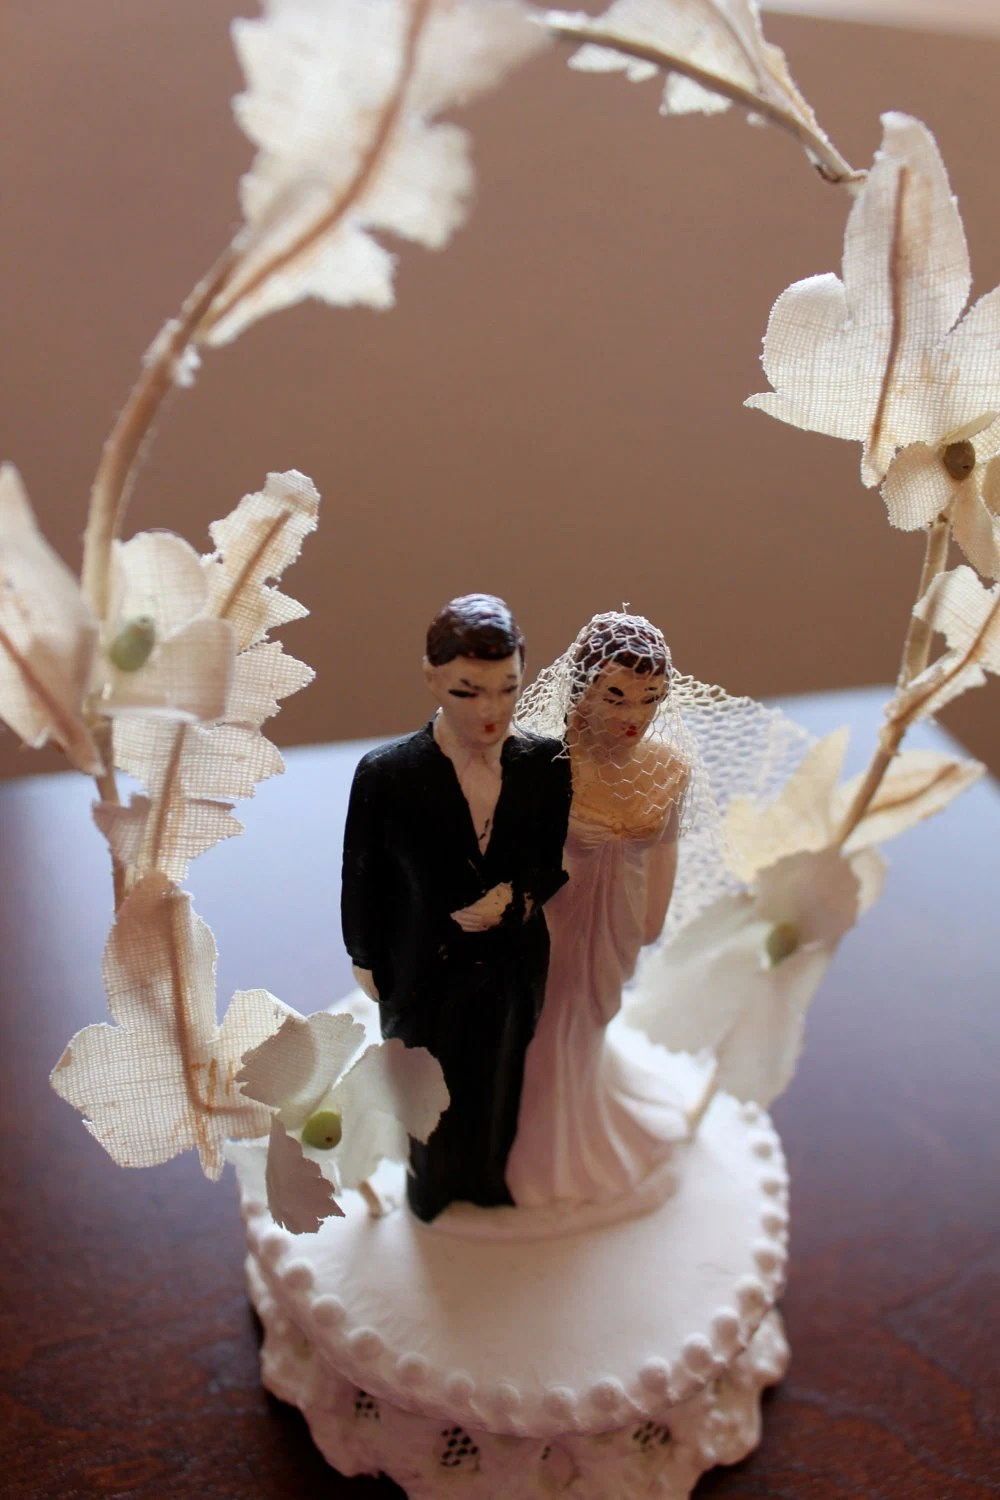 Old Cake Bride And Groom Topper